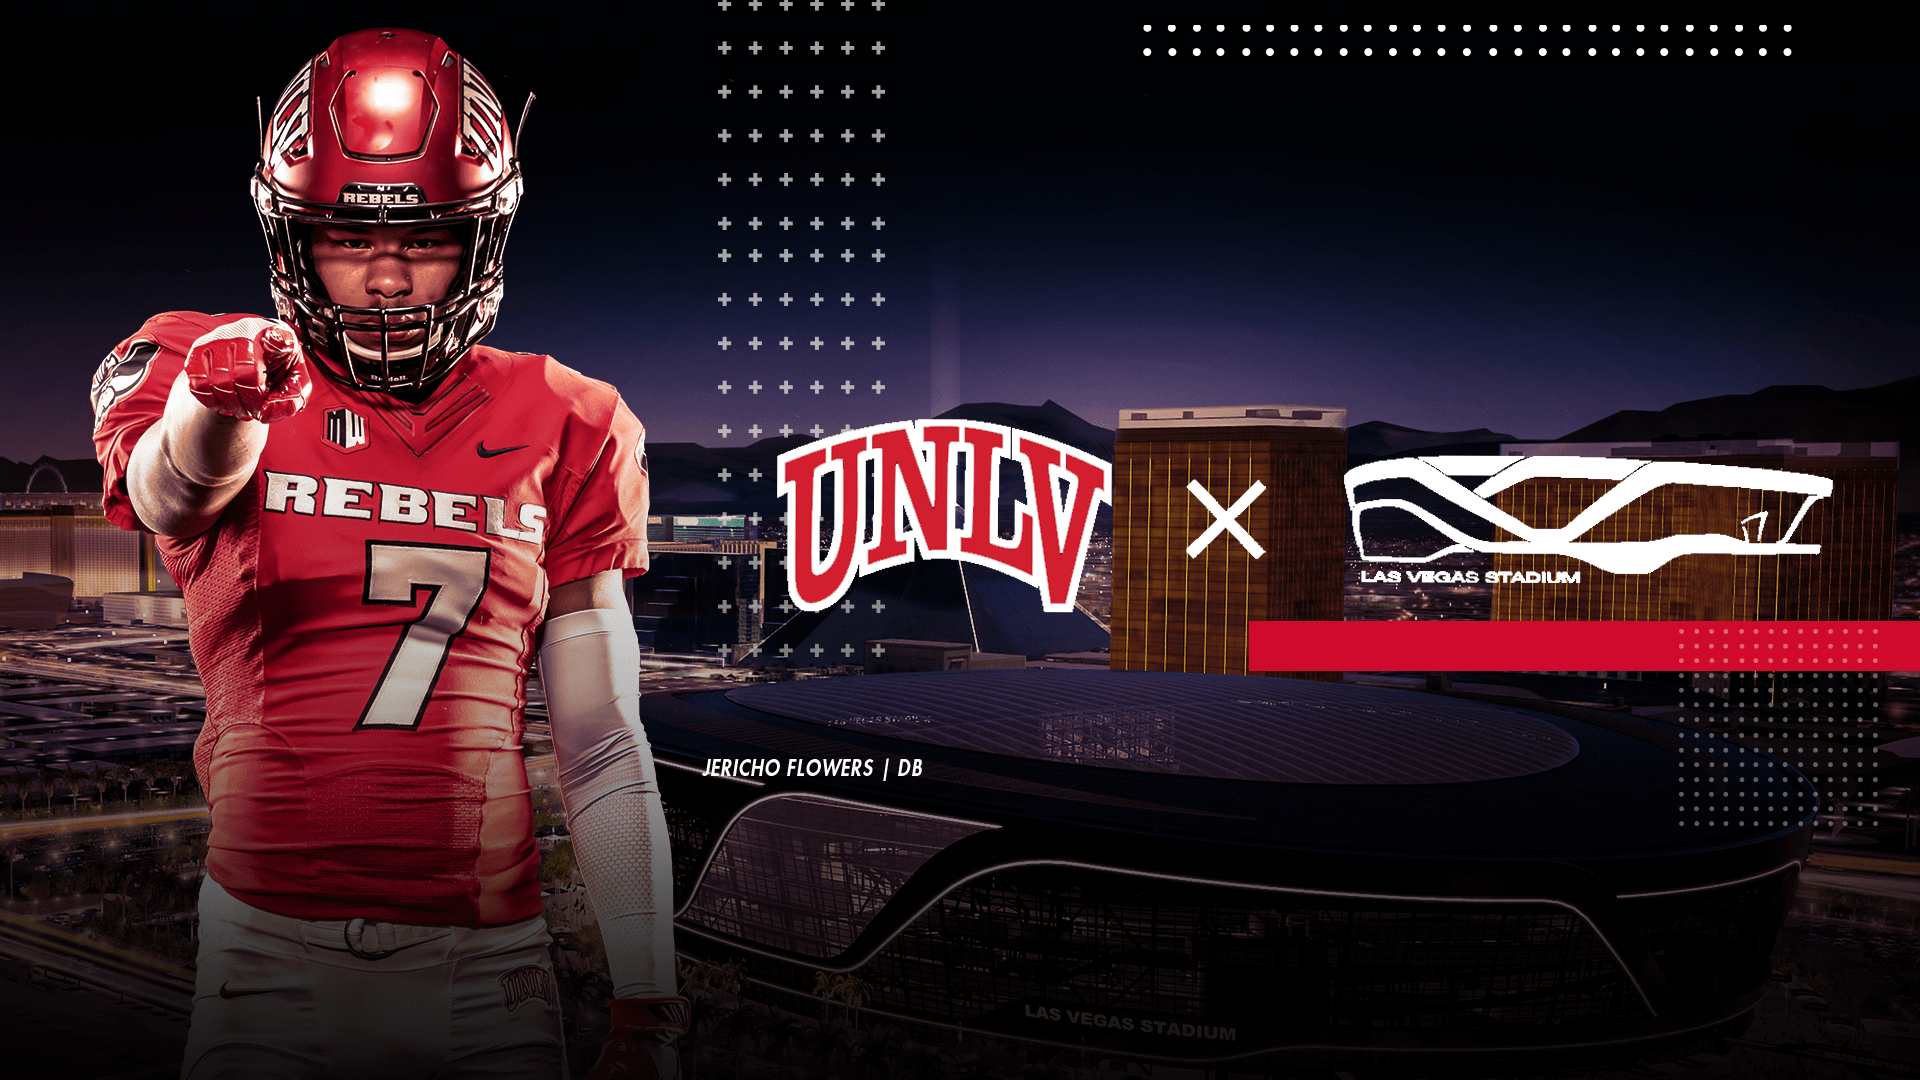 Unlv 2020 Calendar Faithful Fan Pricing' Announced For 2020 Season In LV Stadium For